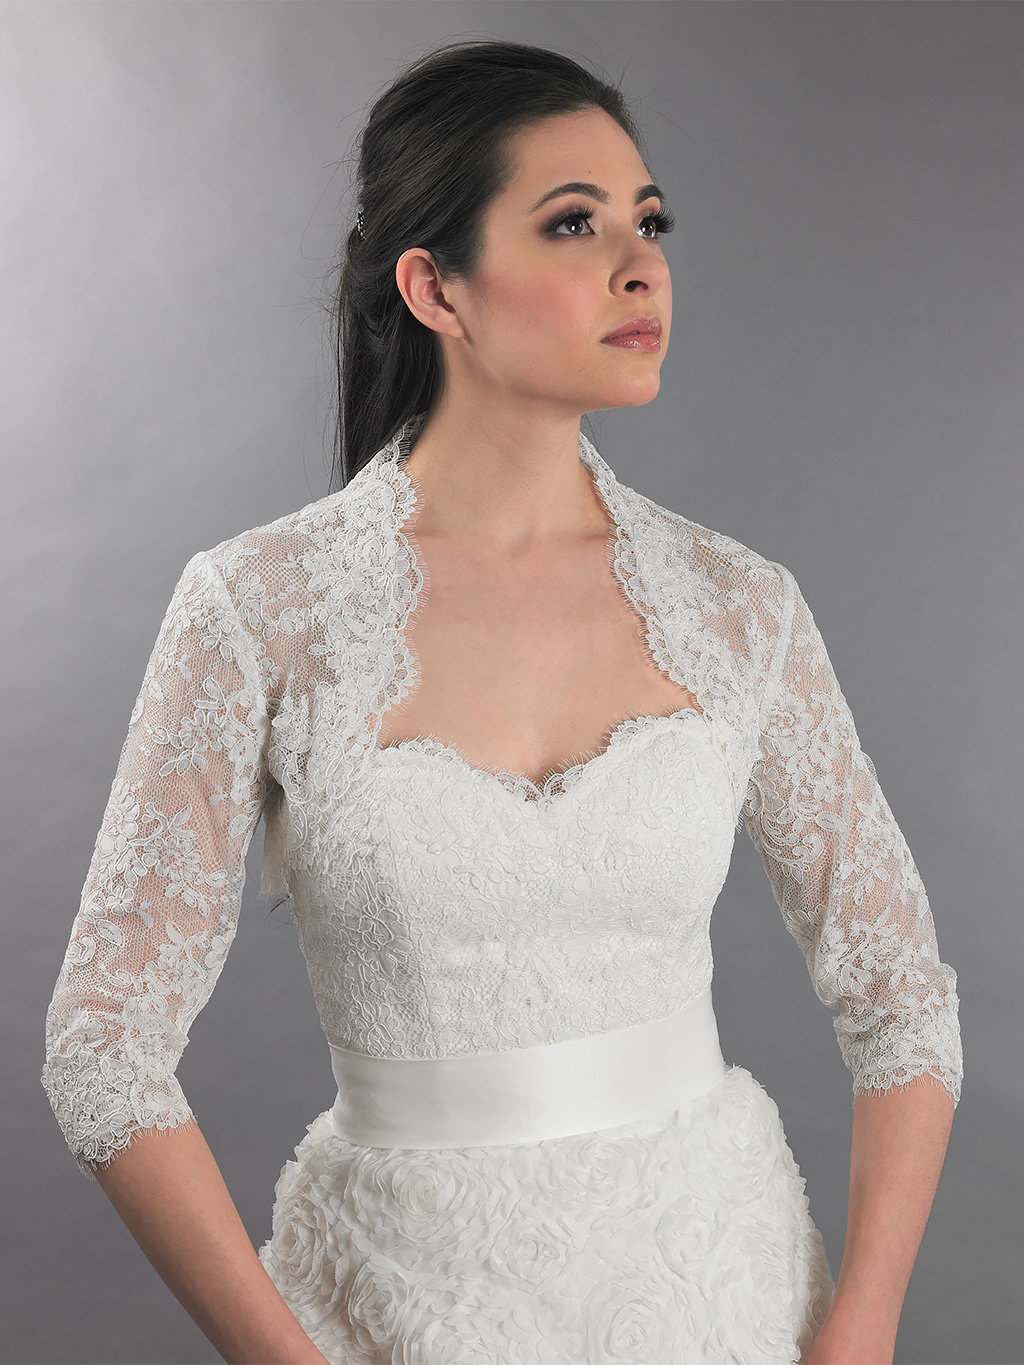 Cheap short and long sleeve lace bolero jackets for women. We carry many styles of lace bolero jackets for bridesmaids, mother of the brides, cocktail parties. My Cart. Gold Lace Bolero Jacket Short Sleeve Wedding Bolero Gold Bridal. $ USD. $ USD. SALE. CLEARANCE - Embroidered Lace Black Long Sleeve Bolero Jacket Wedding Shrug Bridal.